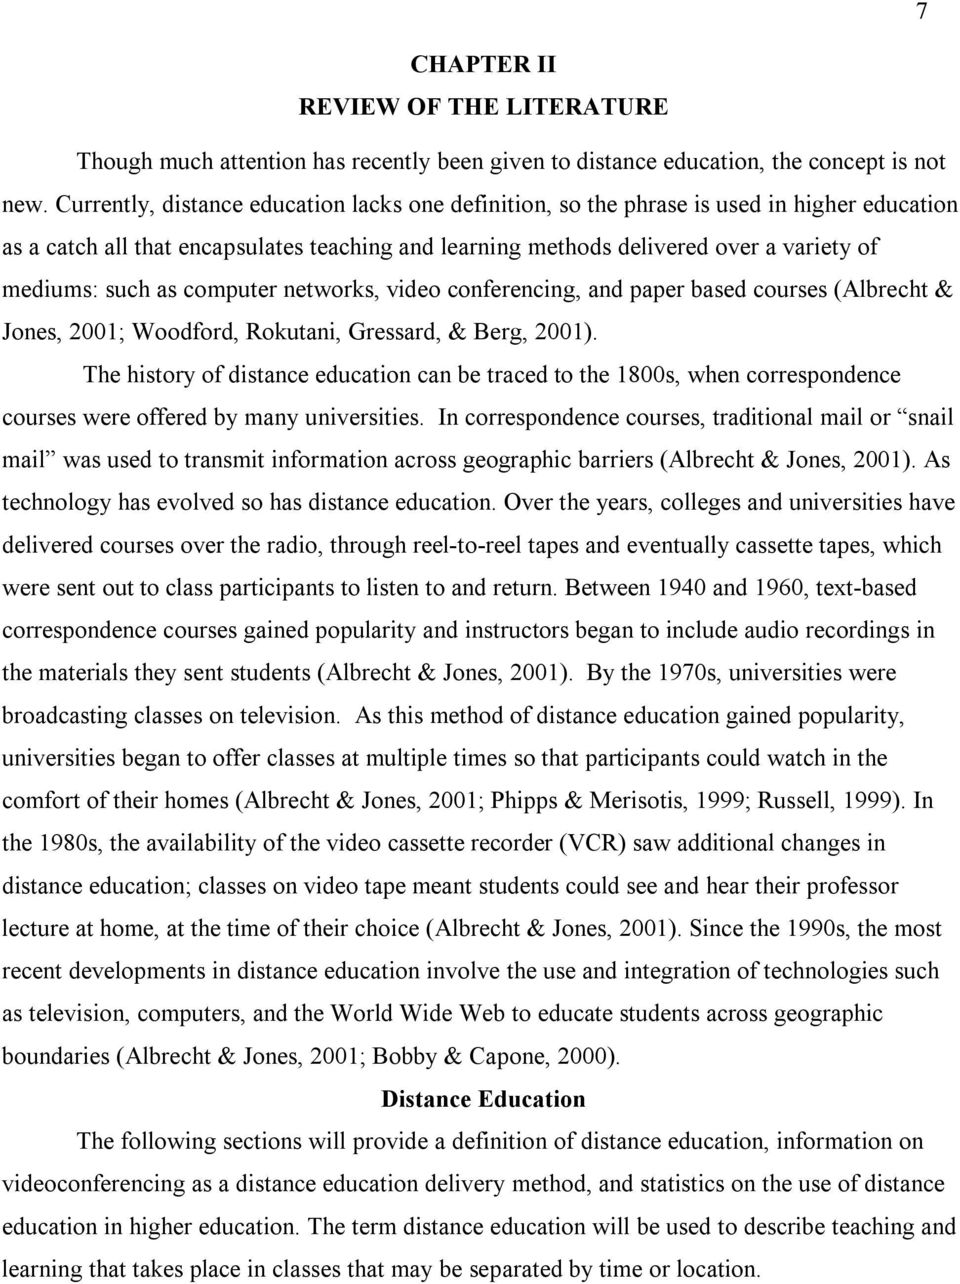 as computer networks, video conferencing, and paper based courses (Albrecht & Jones, 2001; Woodford, Rokutani, Gressard, & Berg, 2001).